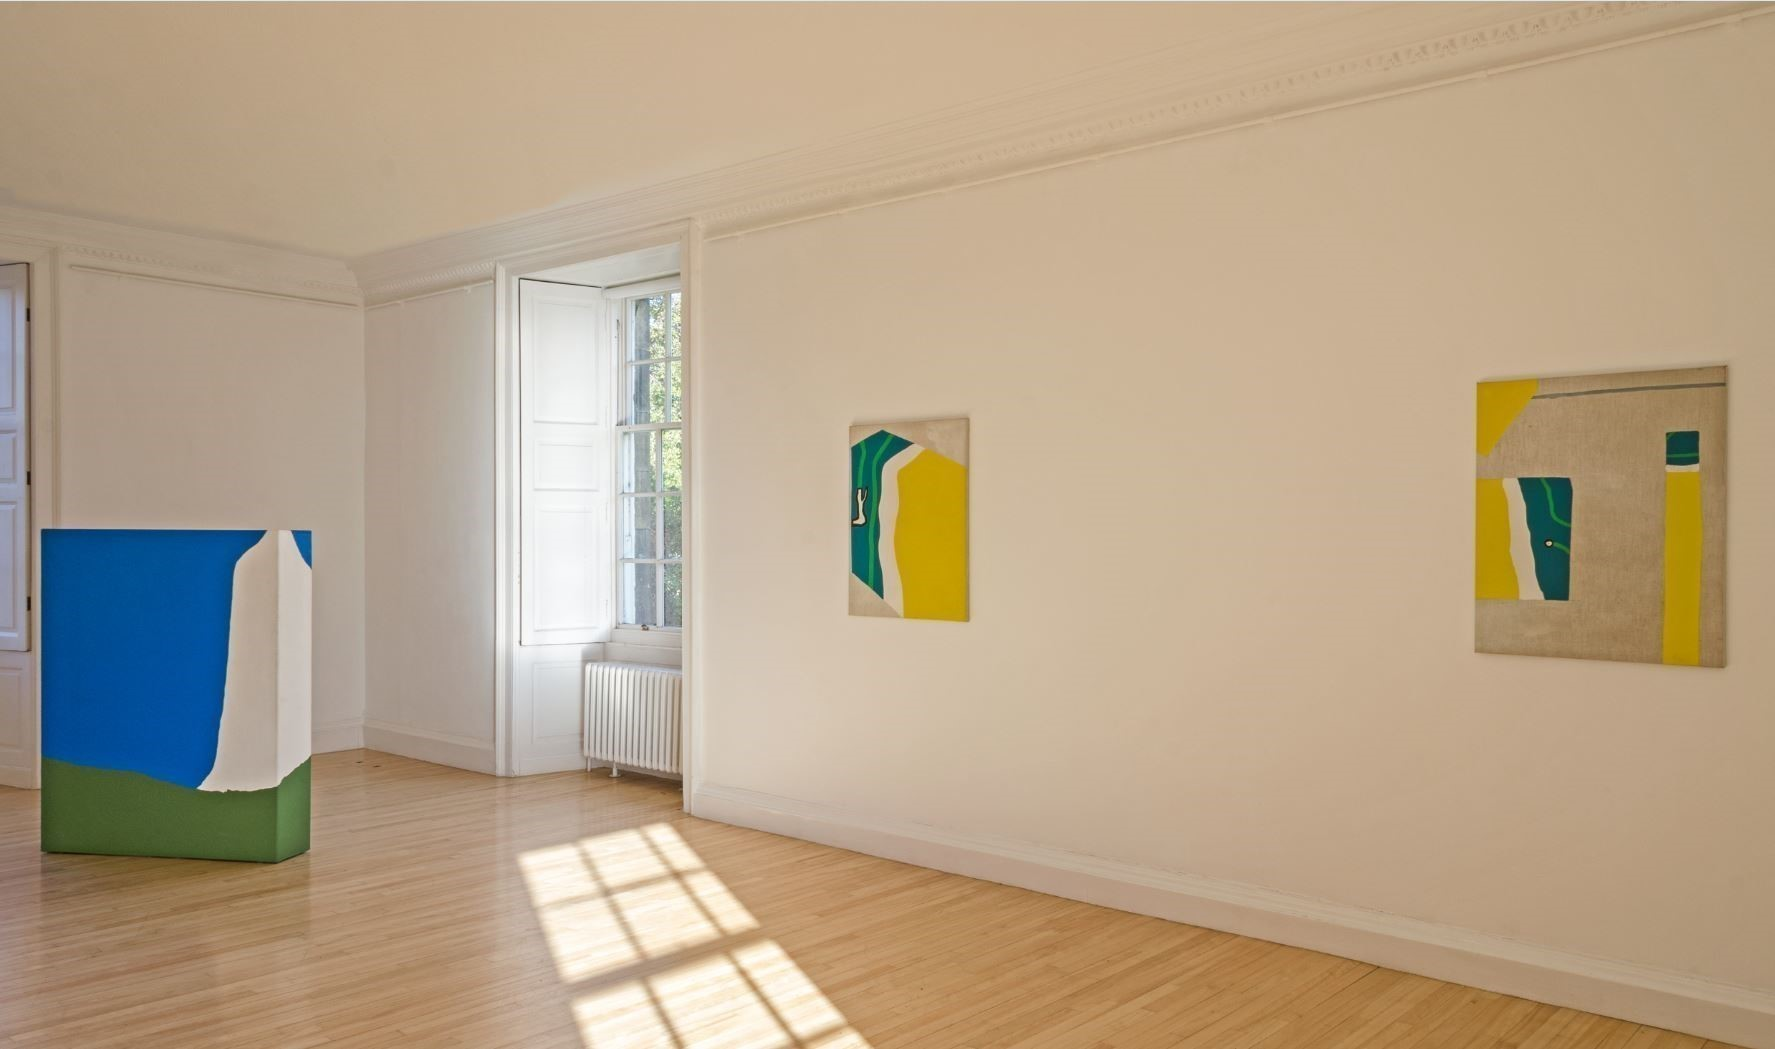 Installation shot Raoul De Keyser: Paintings 1967 to 2013. Image by Michael Wolchover